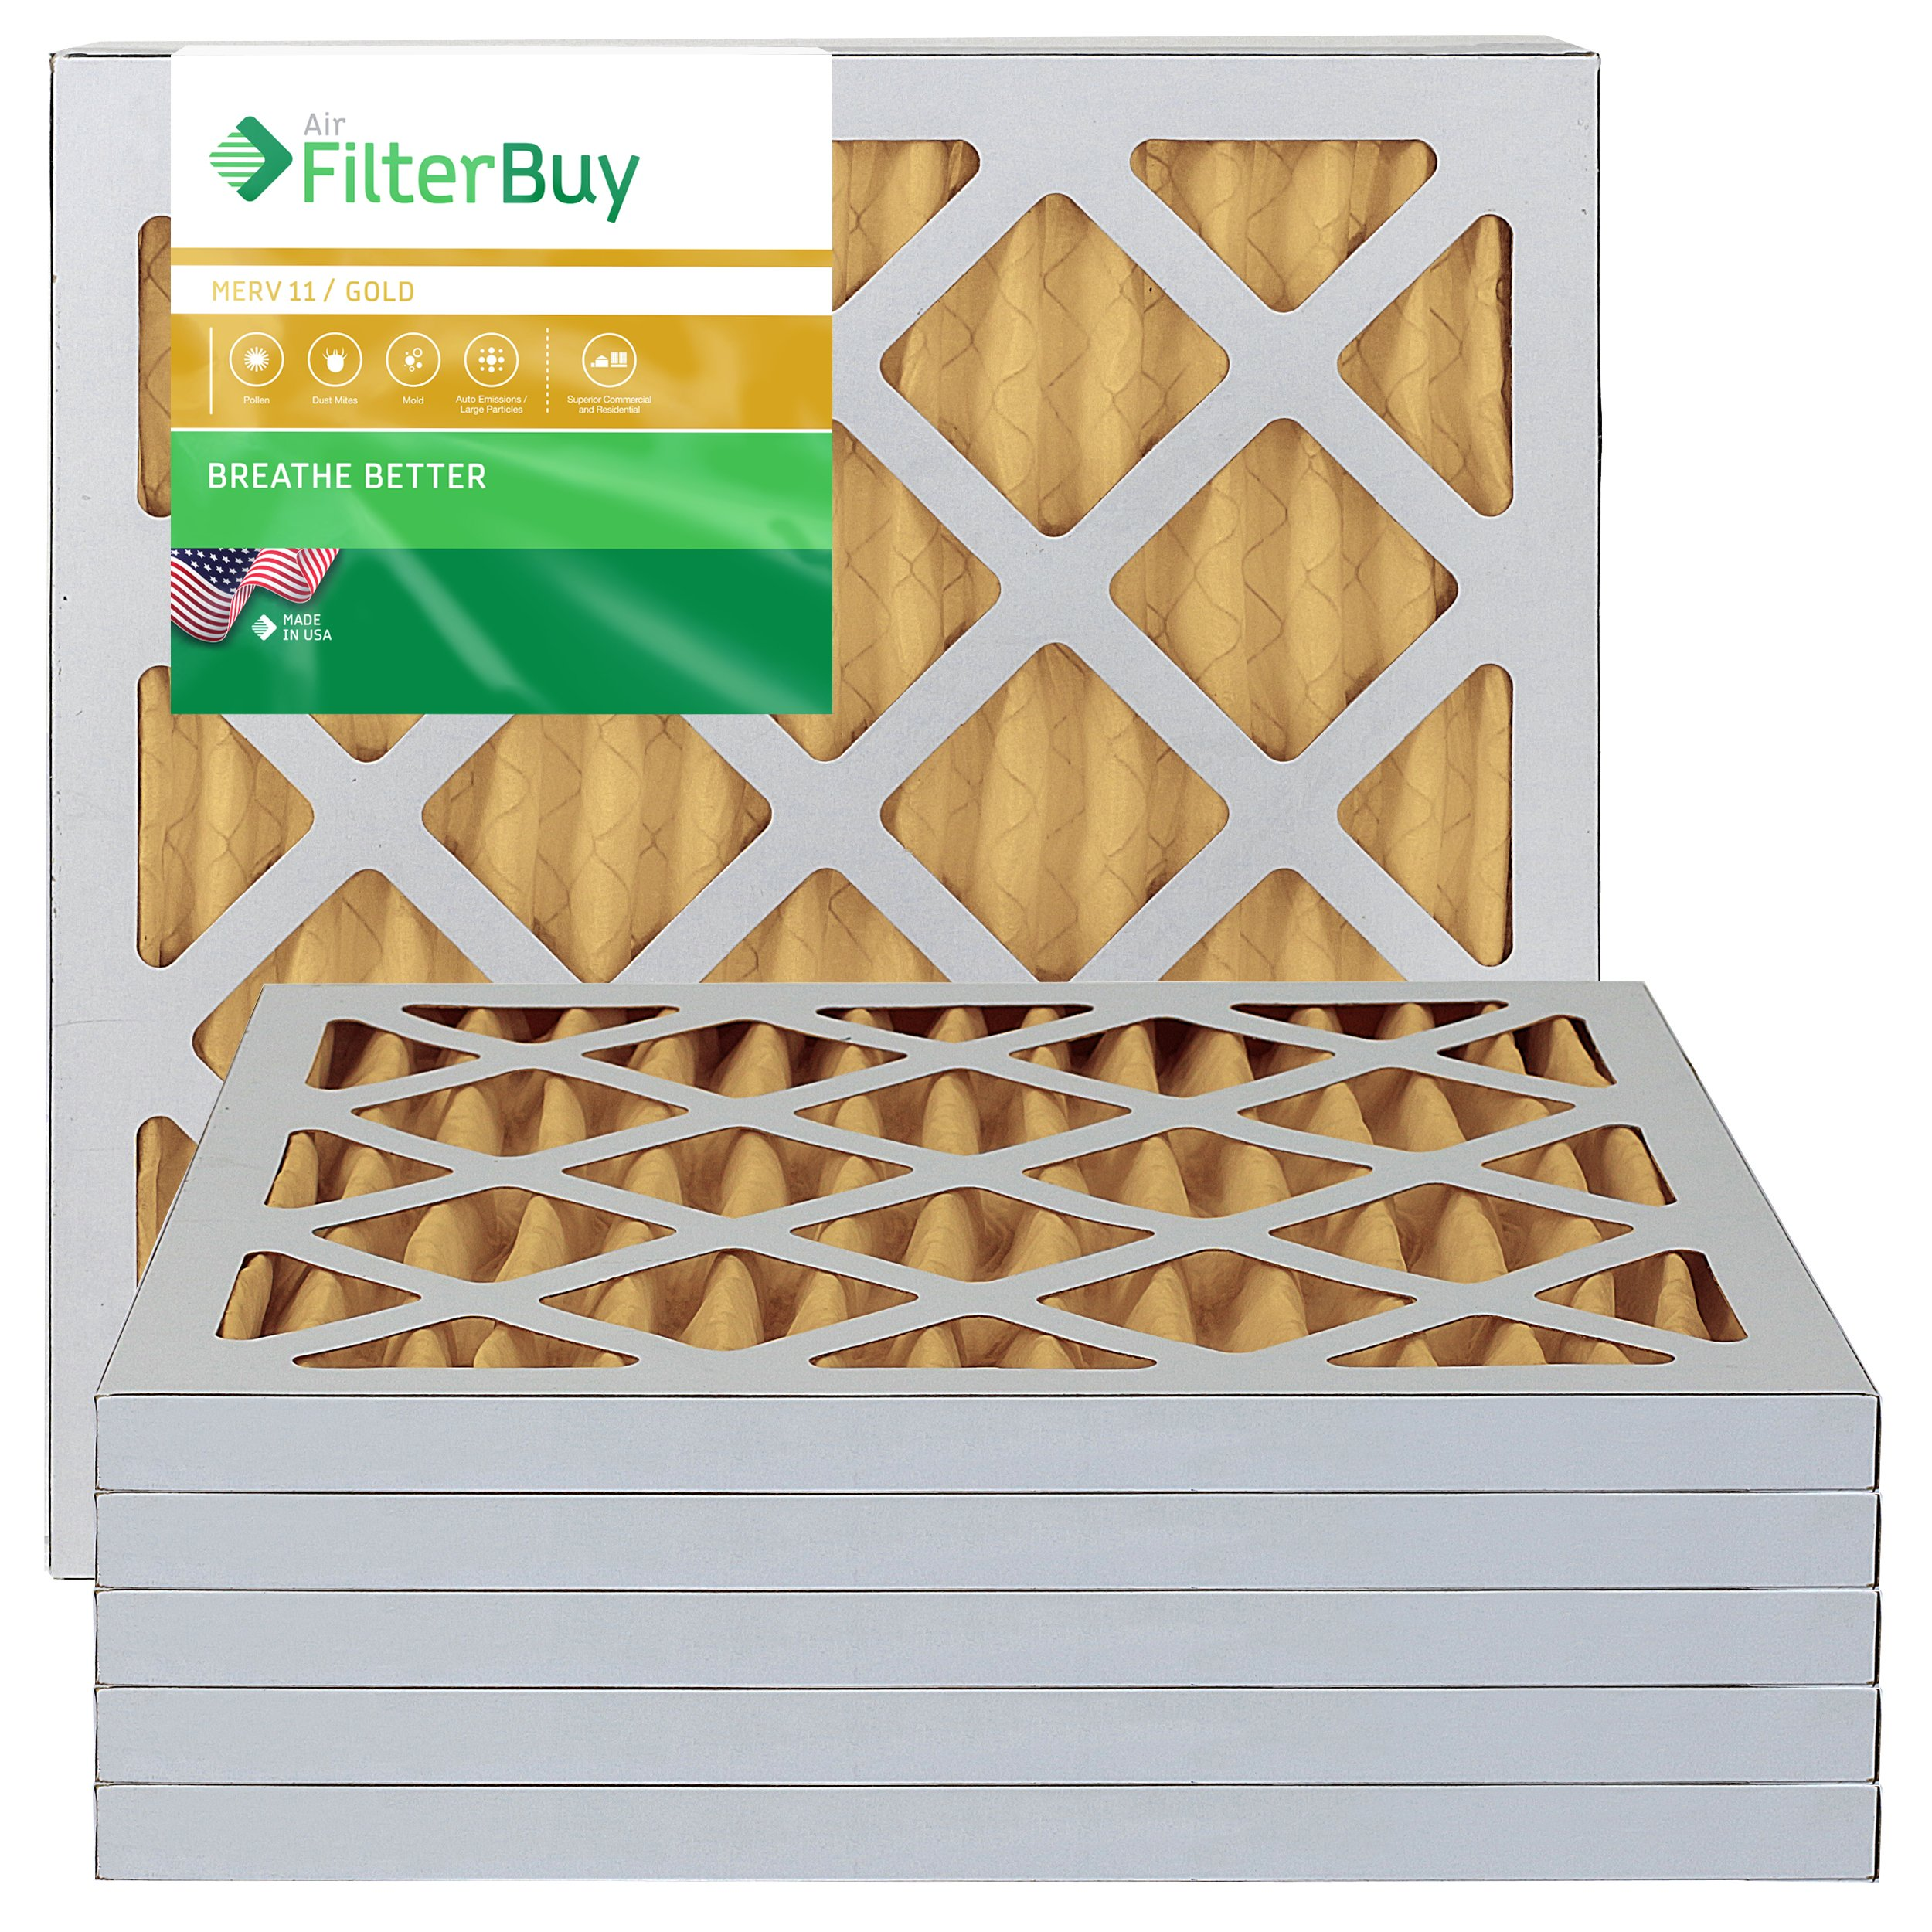 10x10x1 AFB Gold MERV 11 Pleated AC Furnace Air Filter. Pack of 6 Filters. 100% produced in the USA.